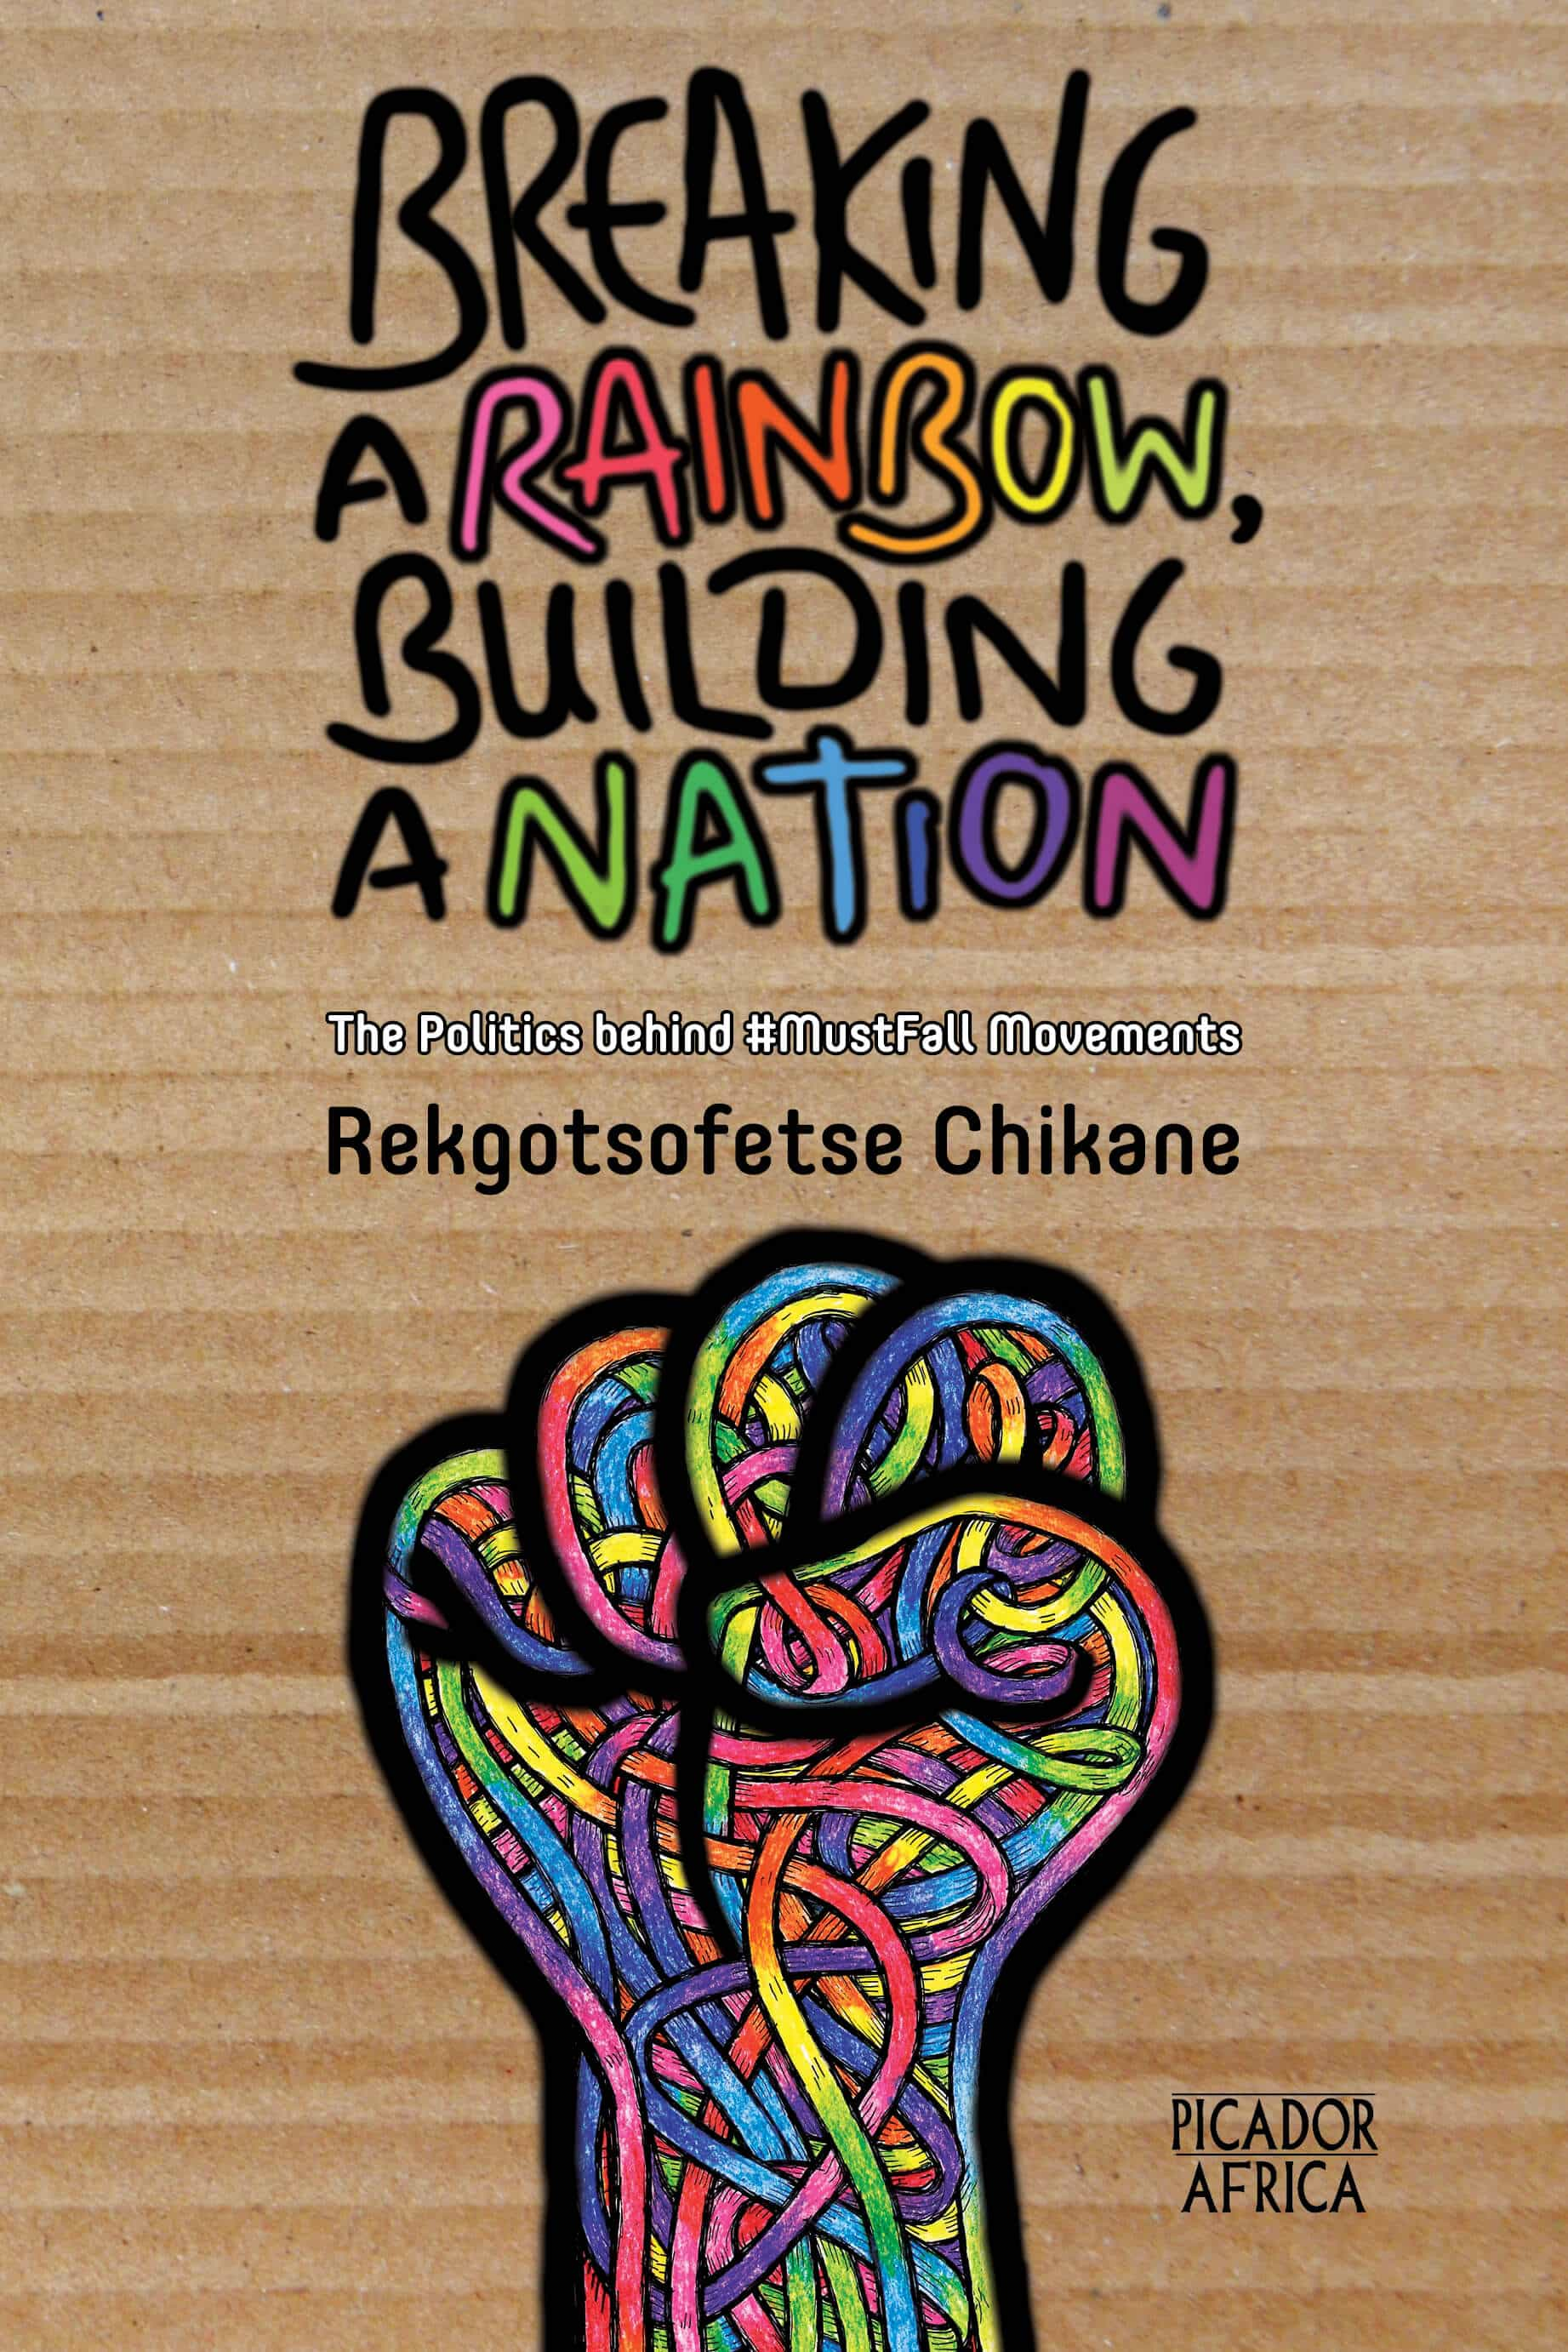 The cover image of Breaking a Rainbow, Building a Nation. The cover features a colourful black power first against a cardboard background